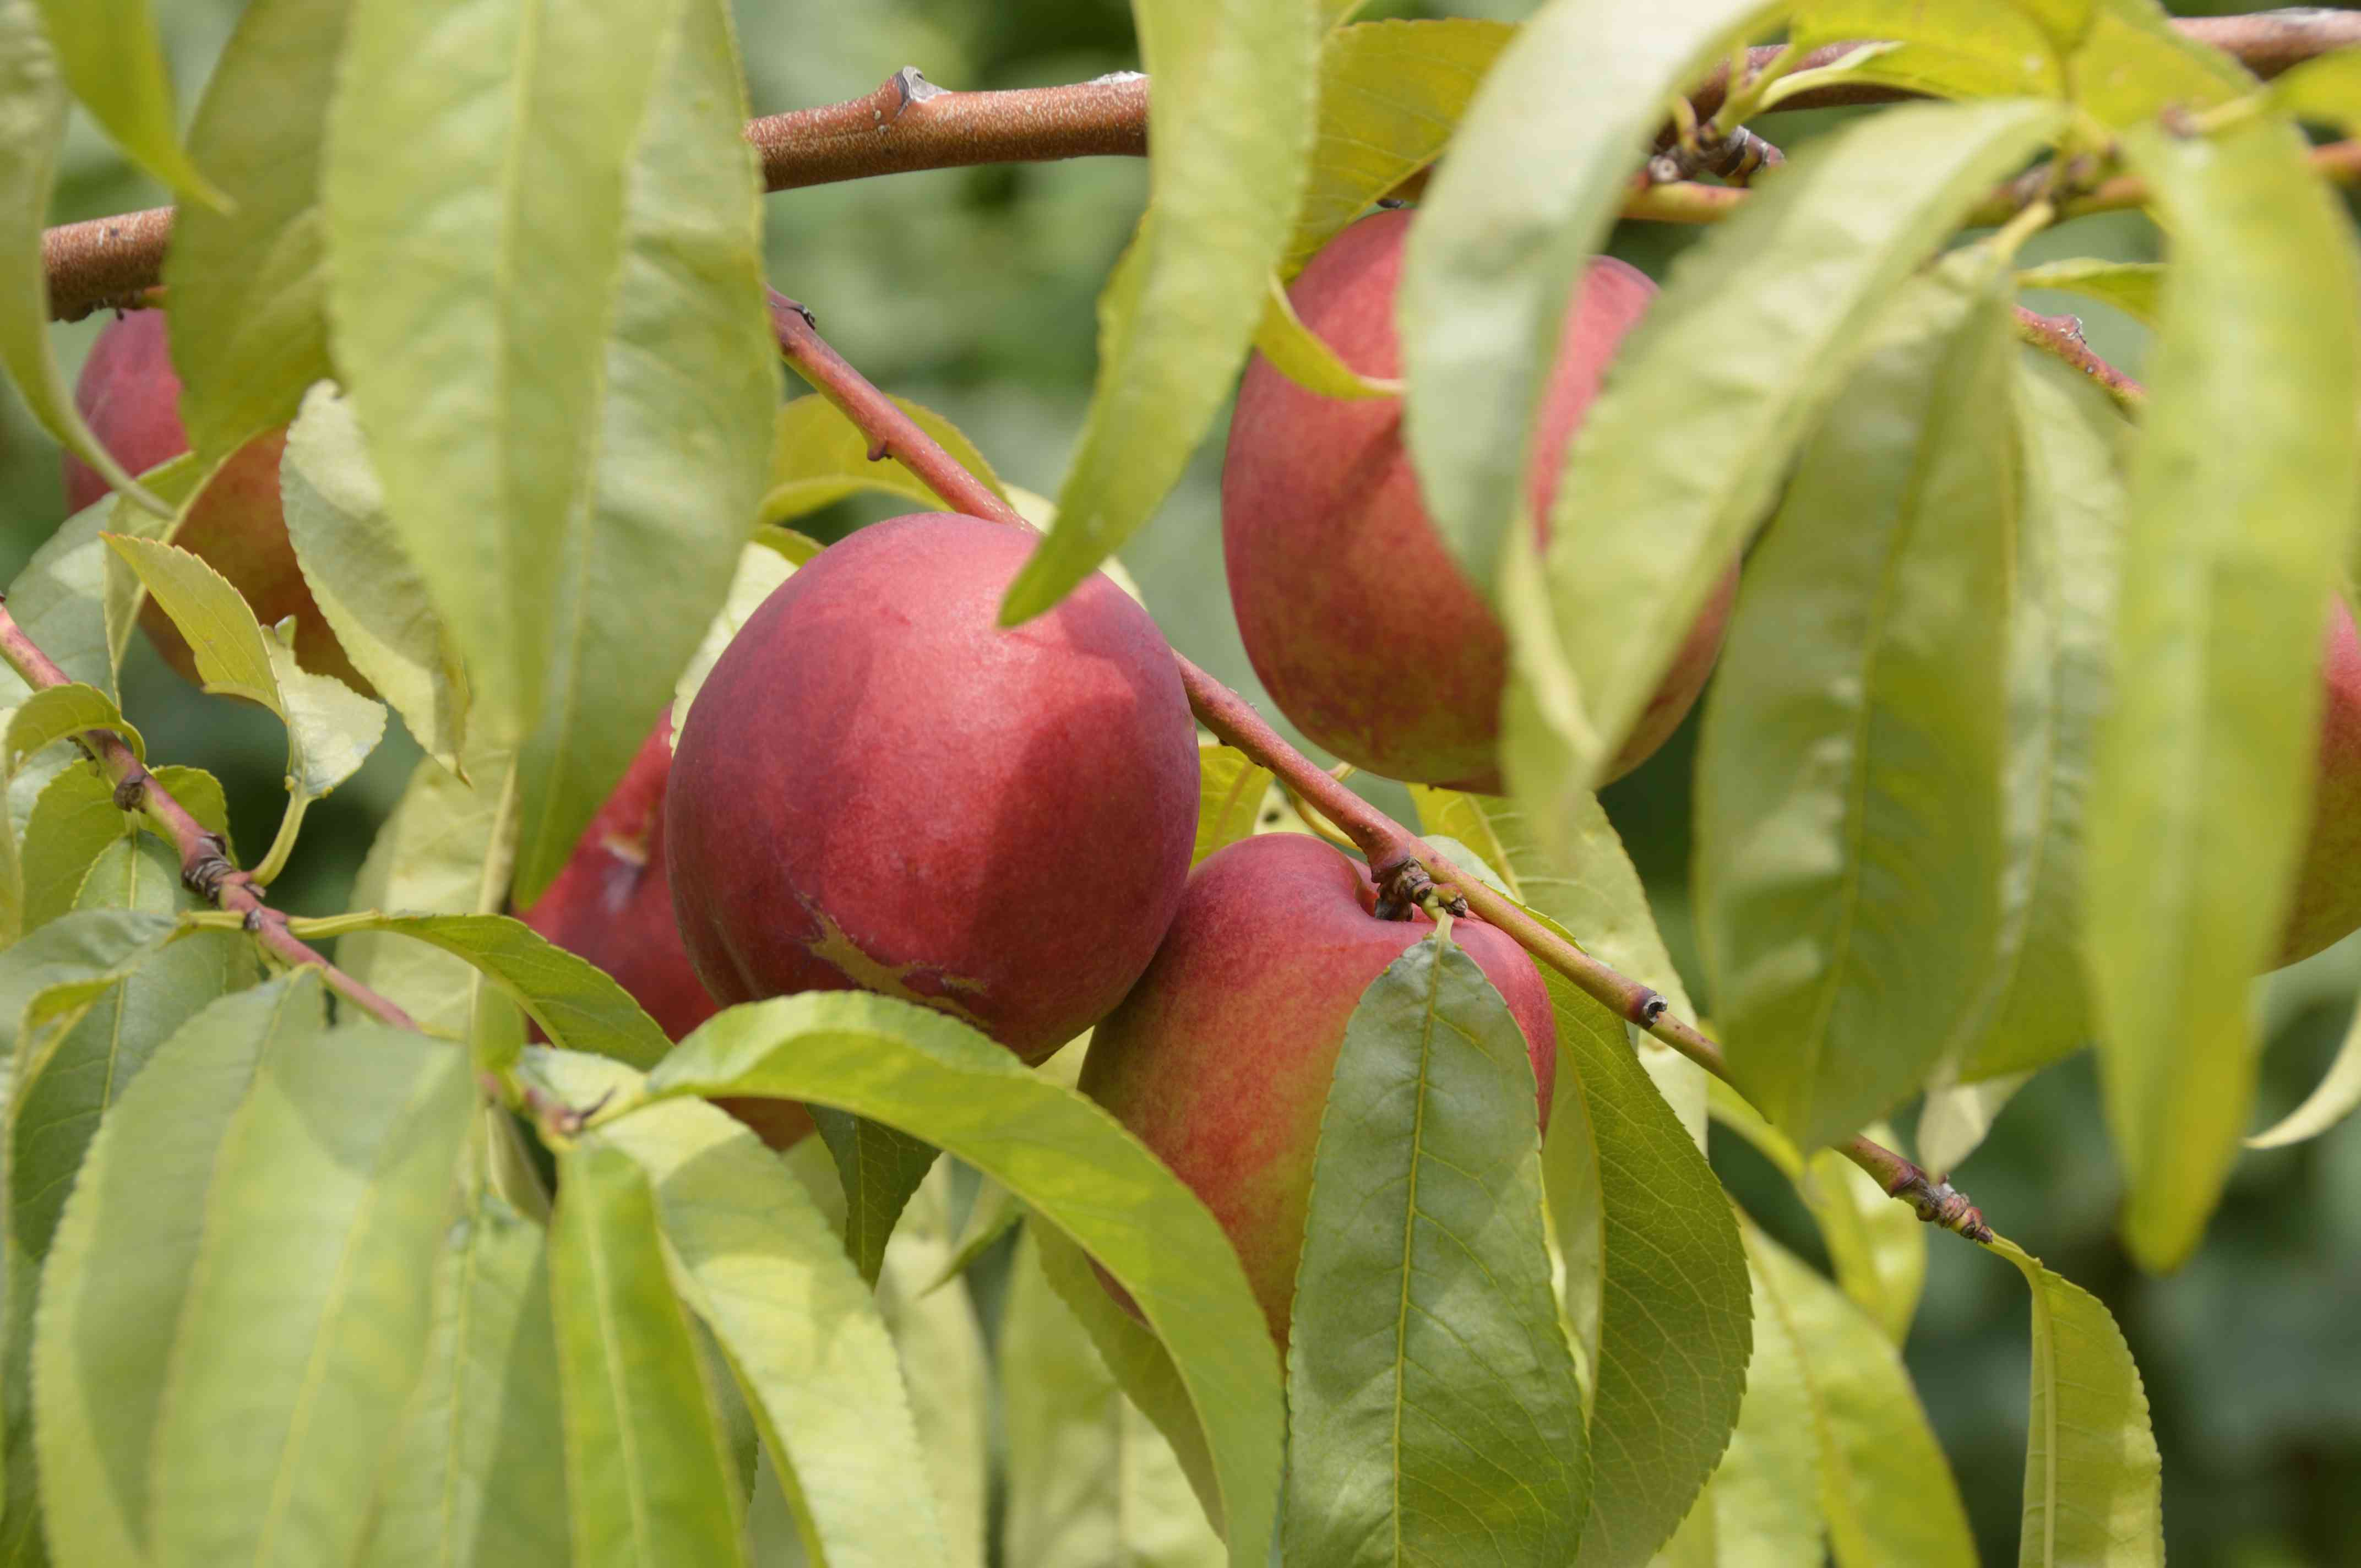 Close up of Nectarine fruits growing on tree branch